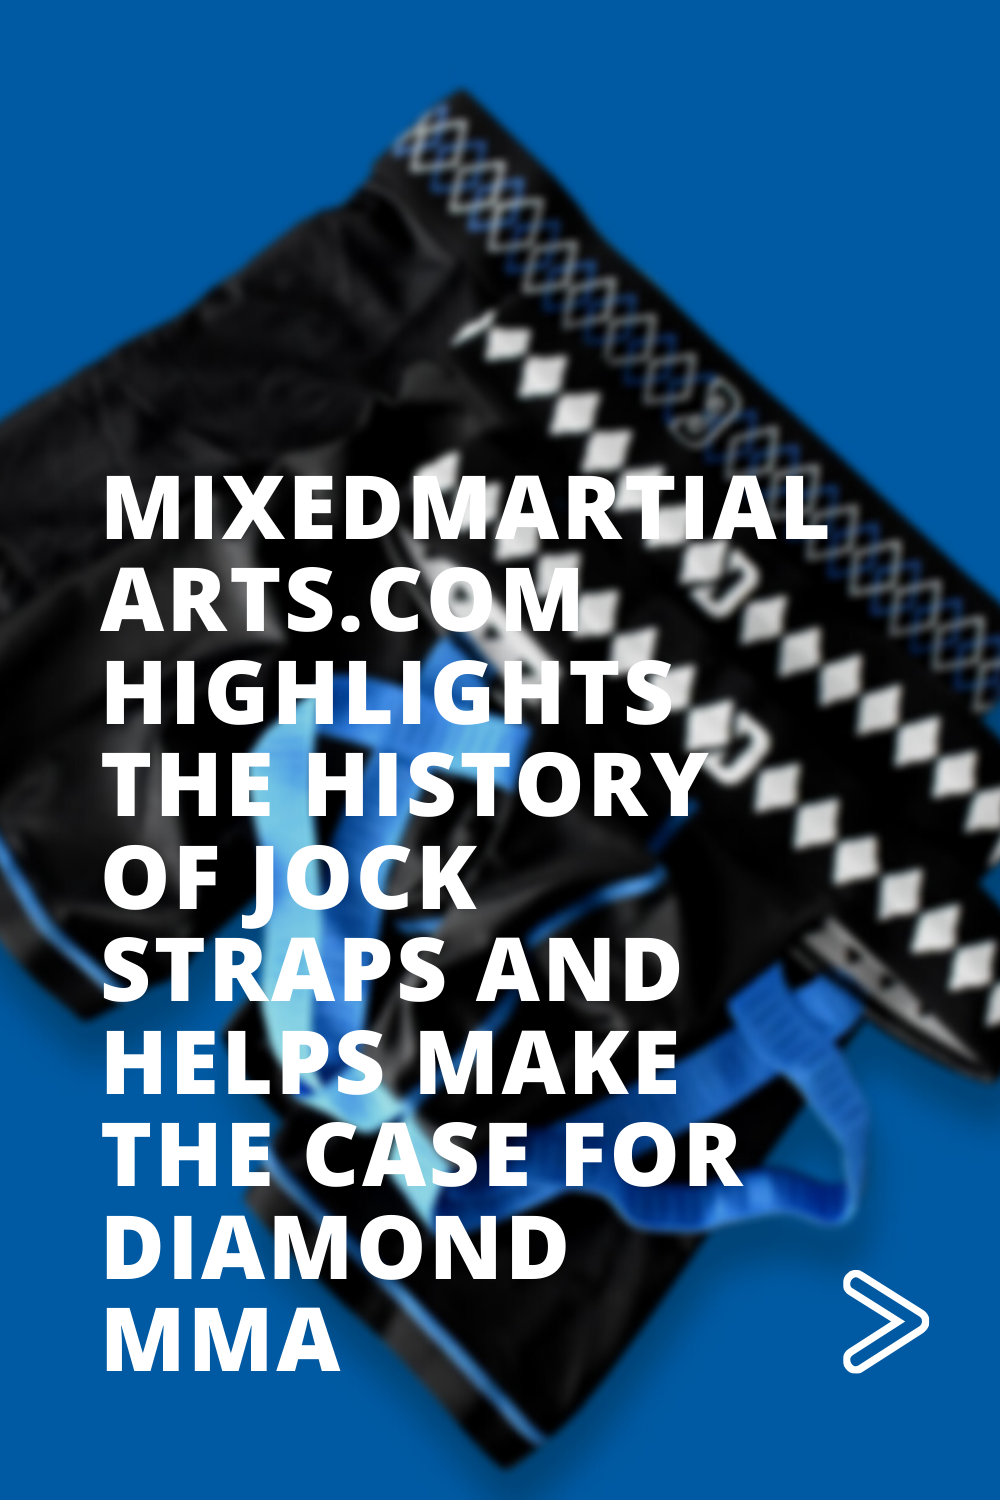 mixedmartialarts.com Highlights the History of Jockstraps, and Helps Make the Case for Diamond MMA